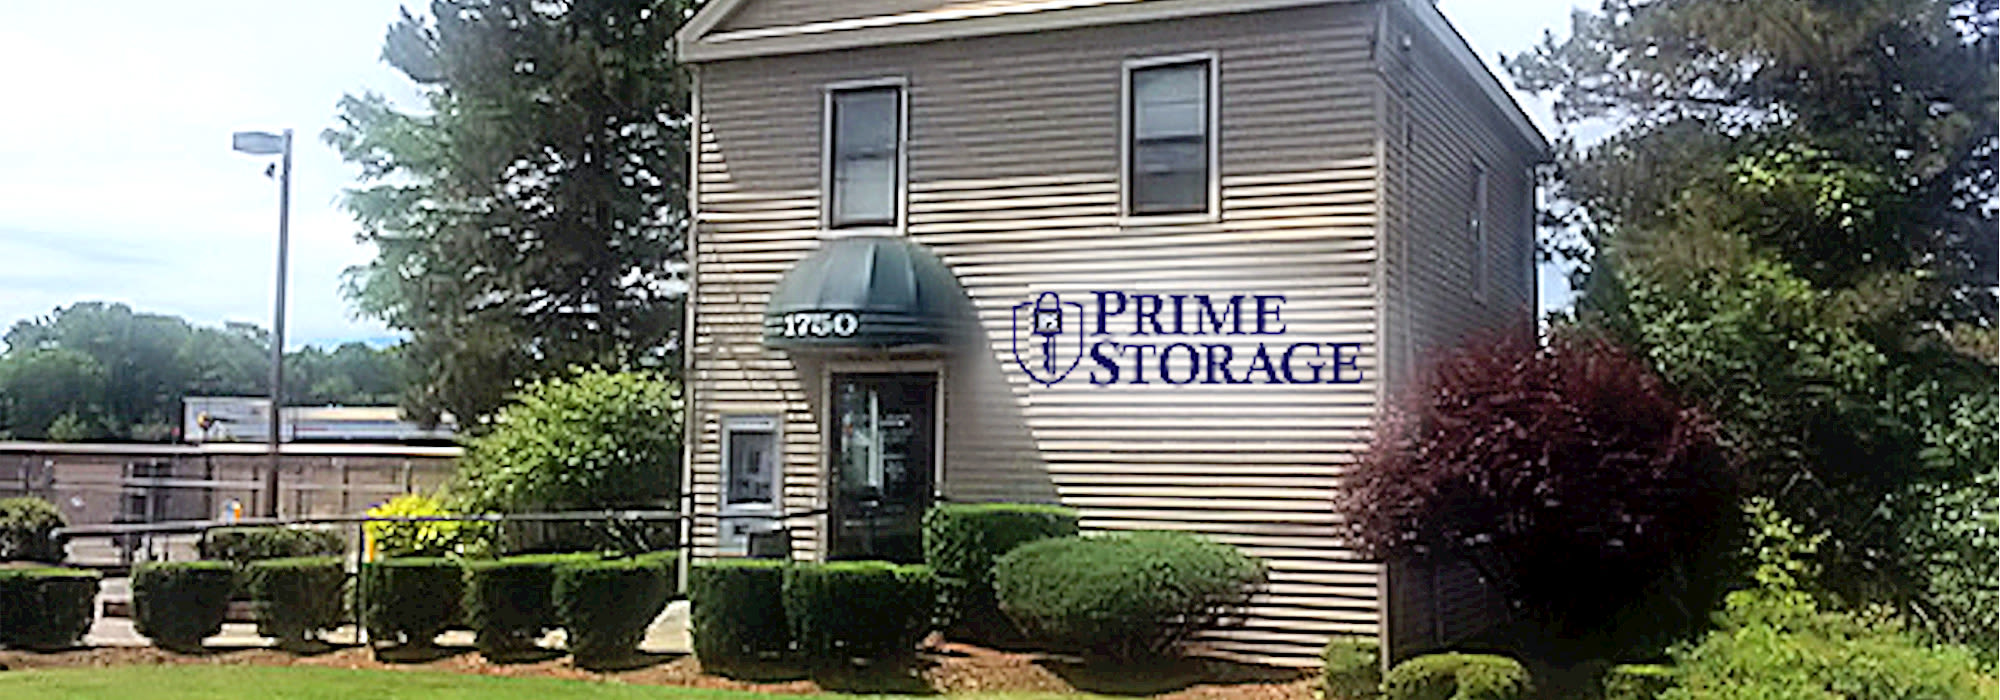 Prime Storage in Albany, New York